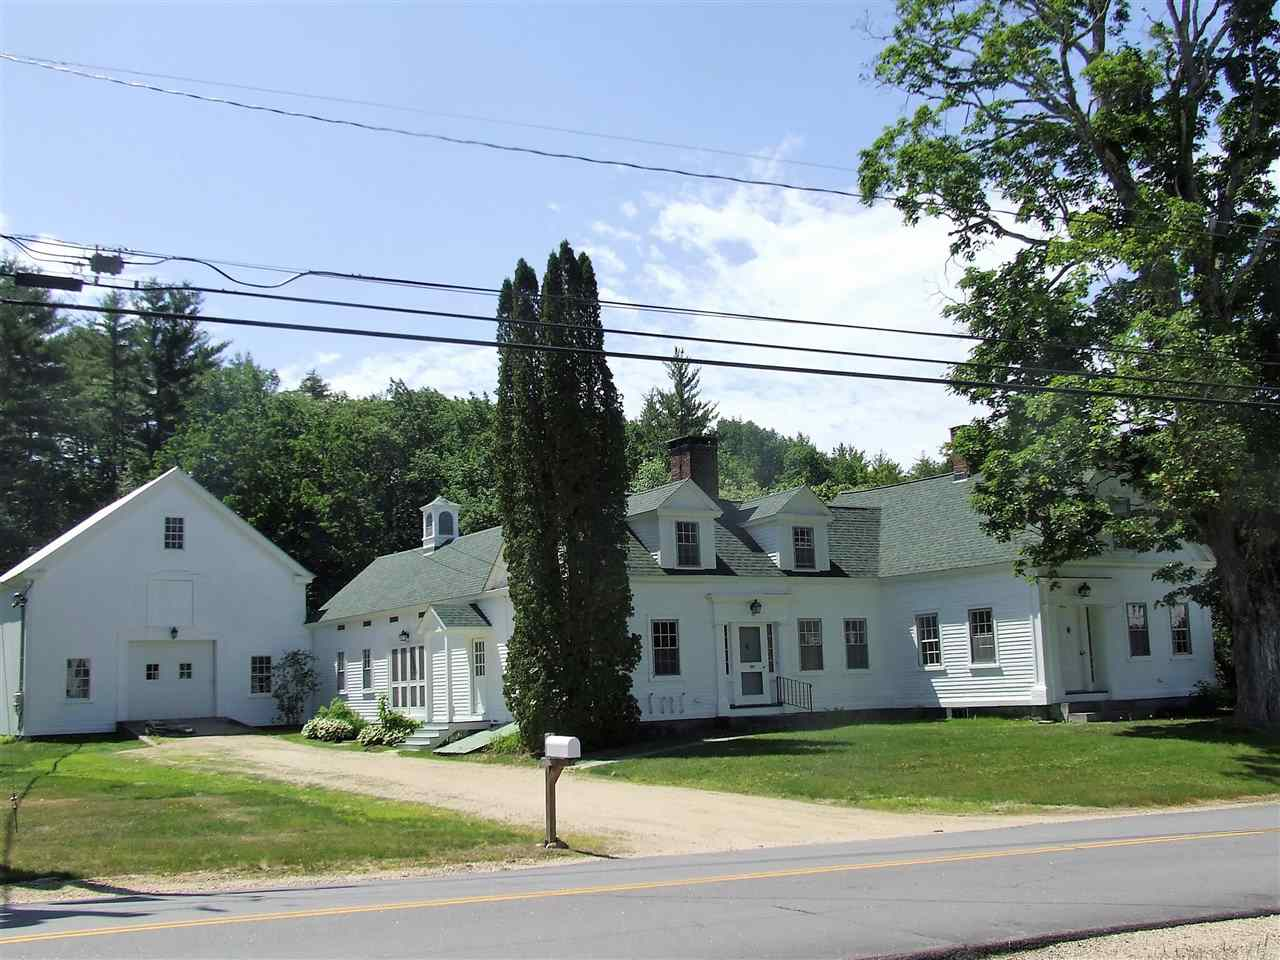 EATON NH Multi Family Homes for sale